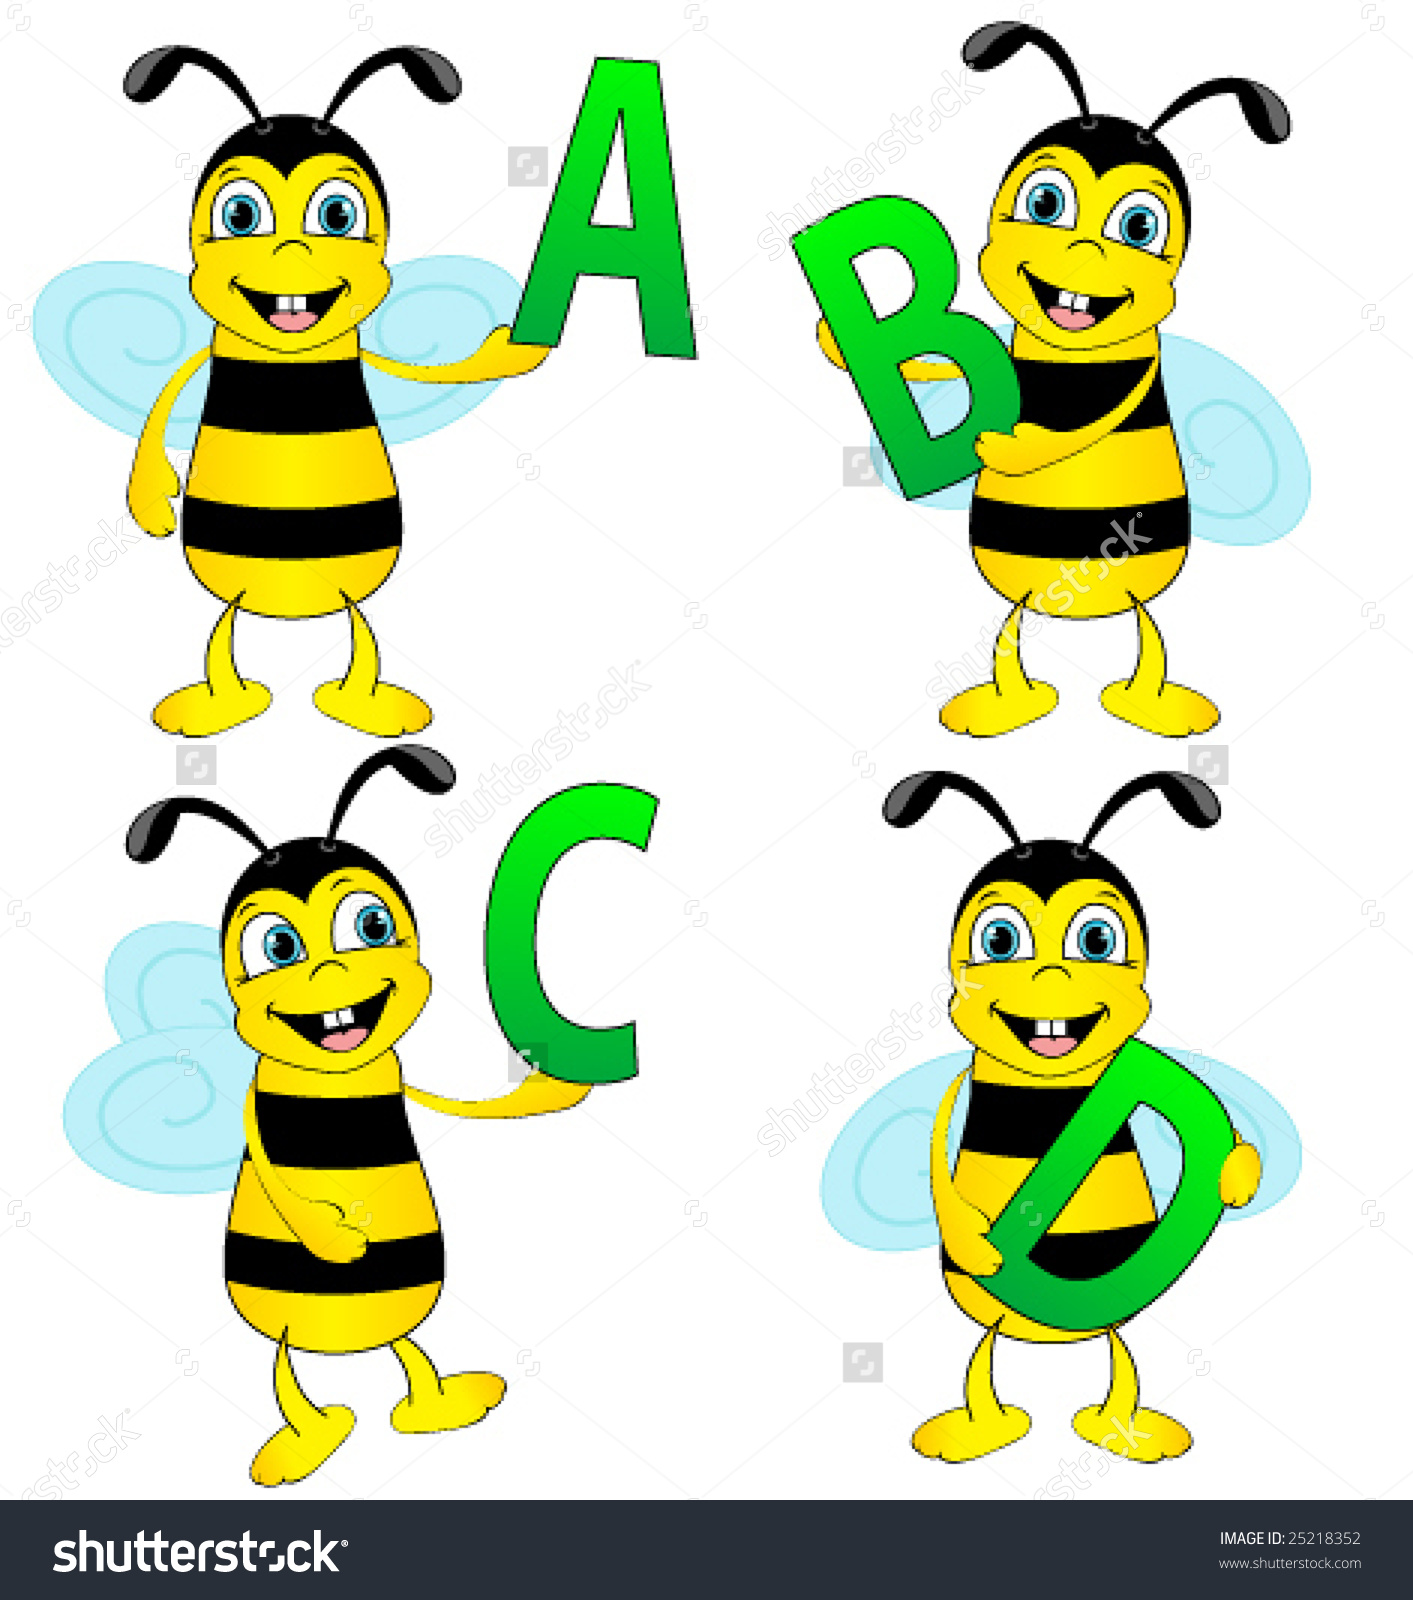 Alphabet bee abc clipart graphic free download Alphabet bee abc clipart - ClipartFest graphic free download